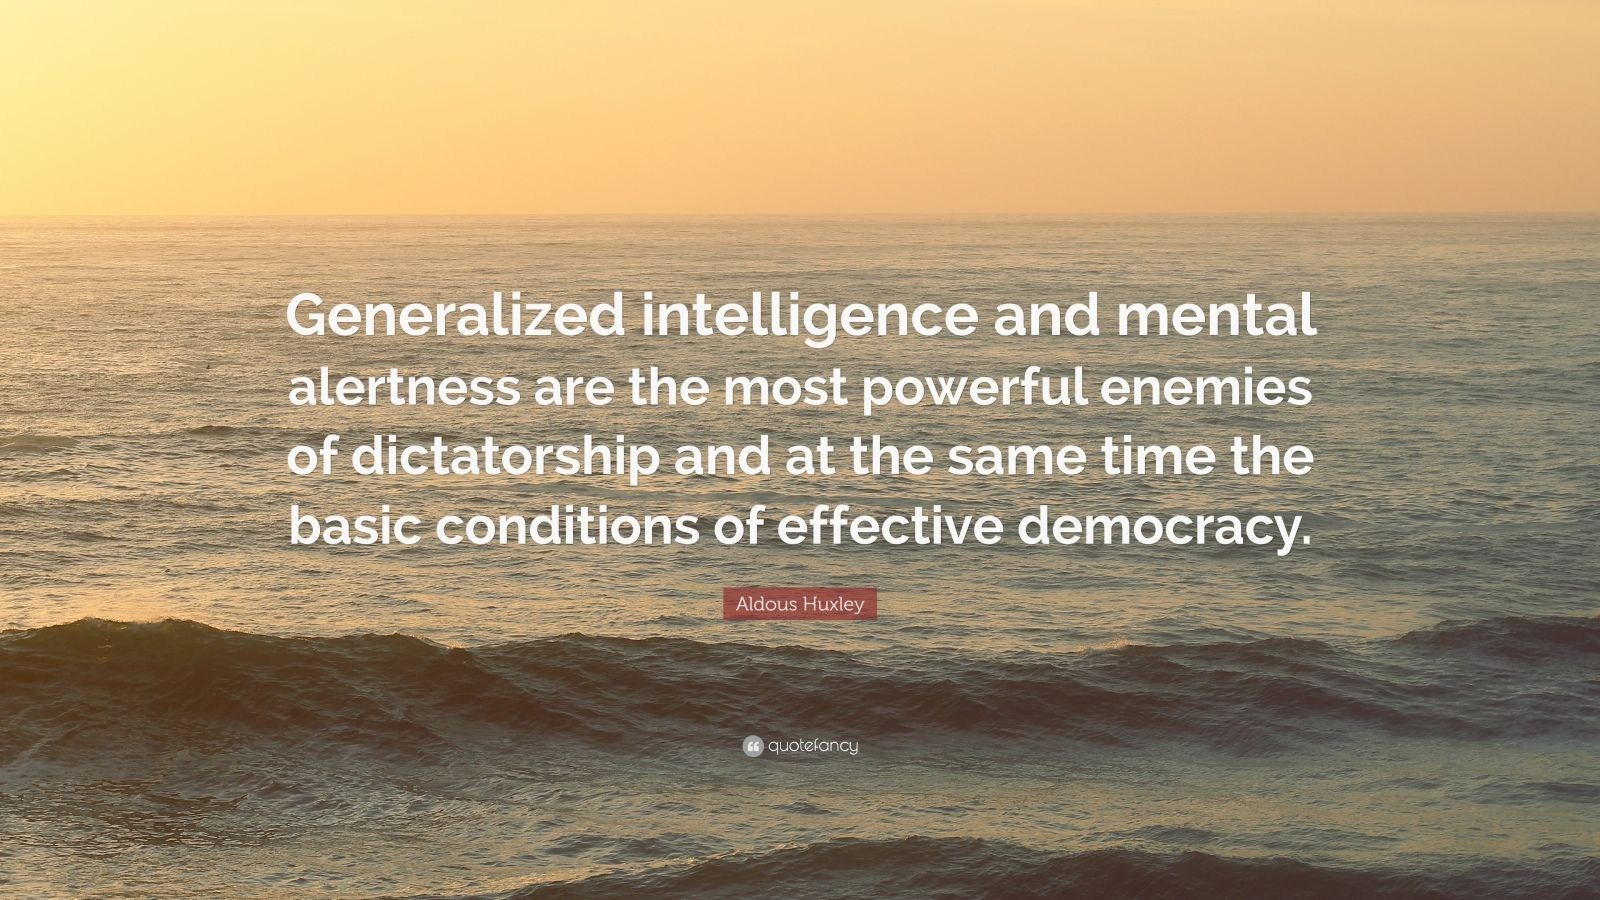 """Aldous Huxley Quote: """"Generalized intelligence and mental alertness are the most powerful enemies of dictatorship and at the same time the basic conditions of effective democracy."""""""